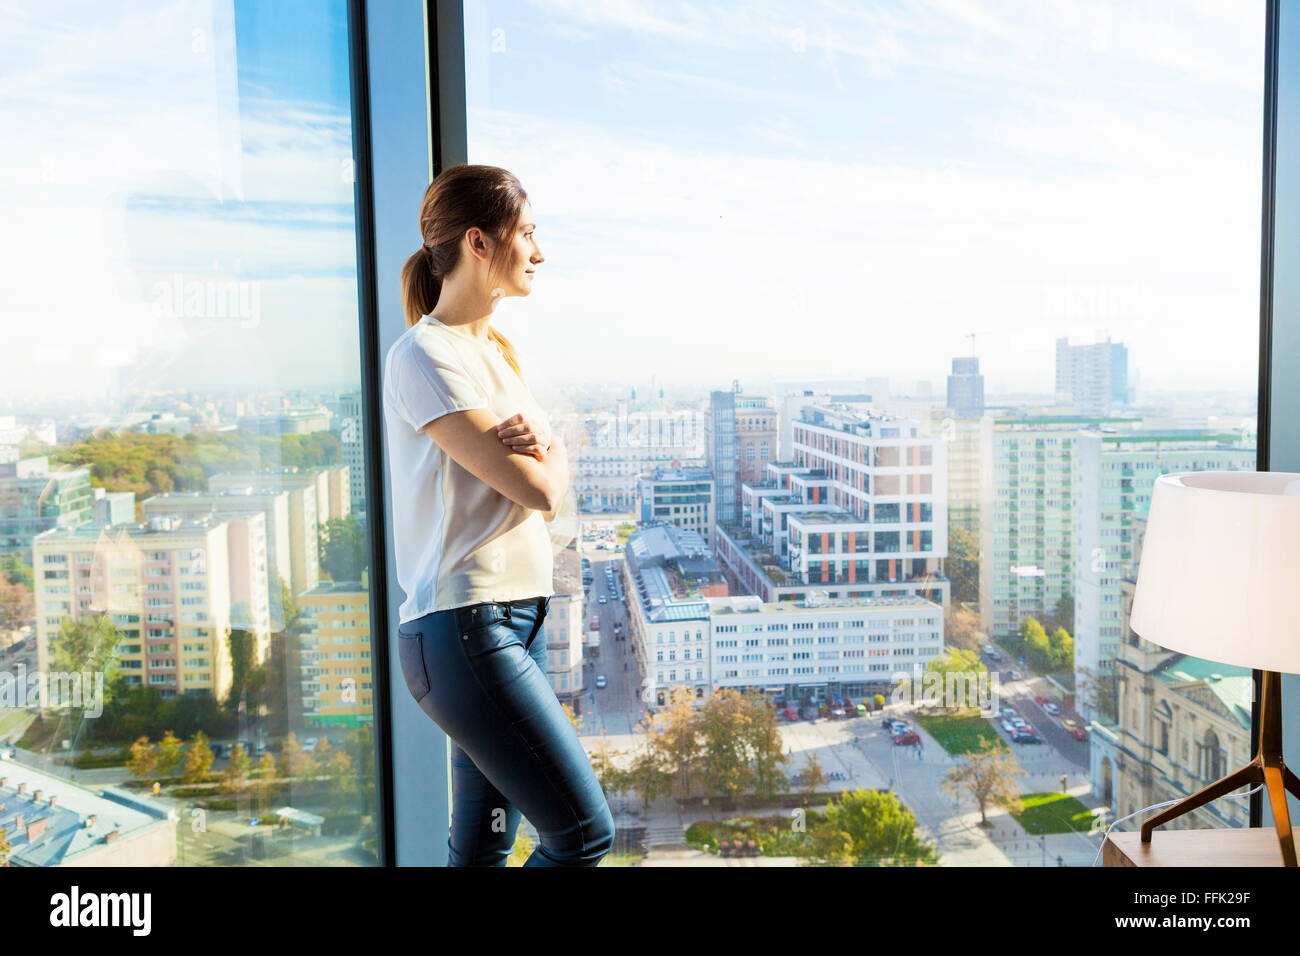 Woman in apartment looking through window - Stock Image